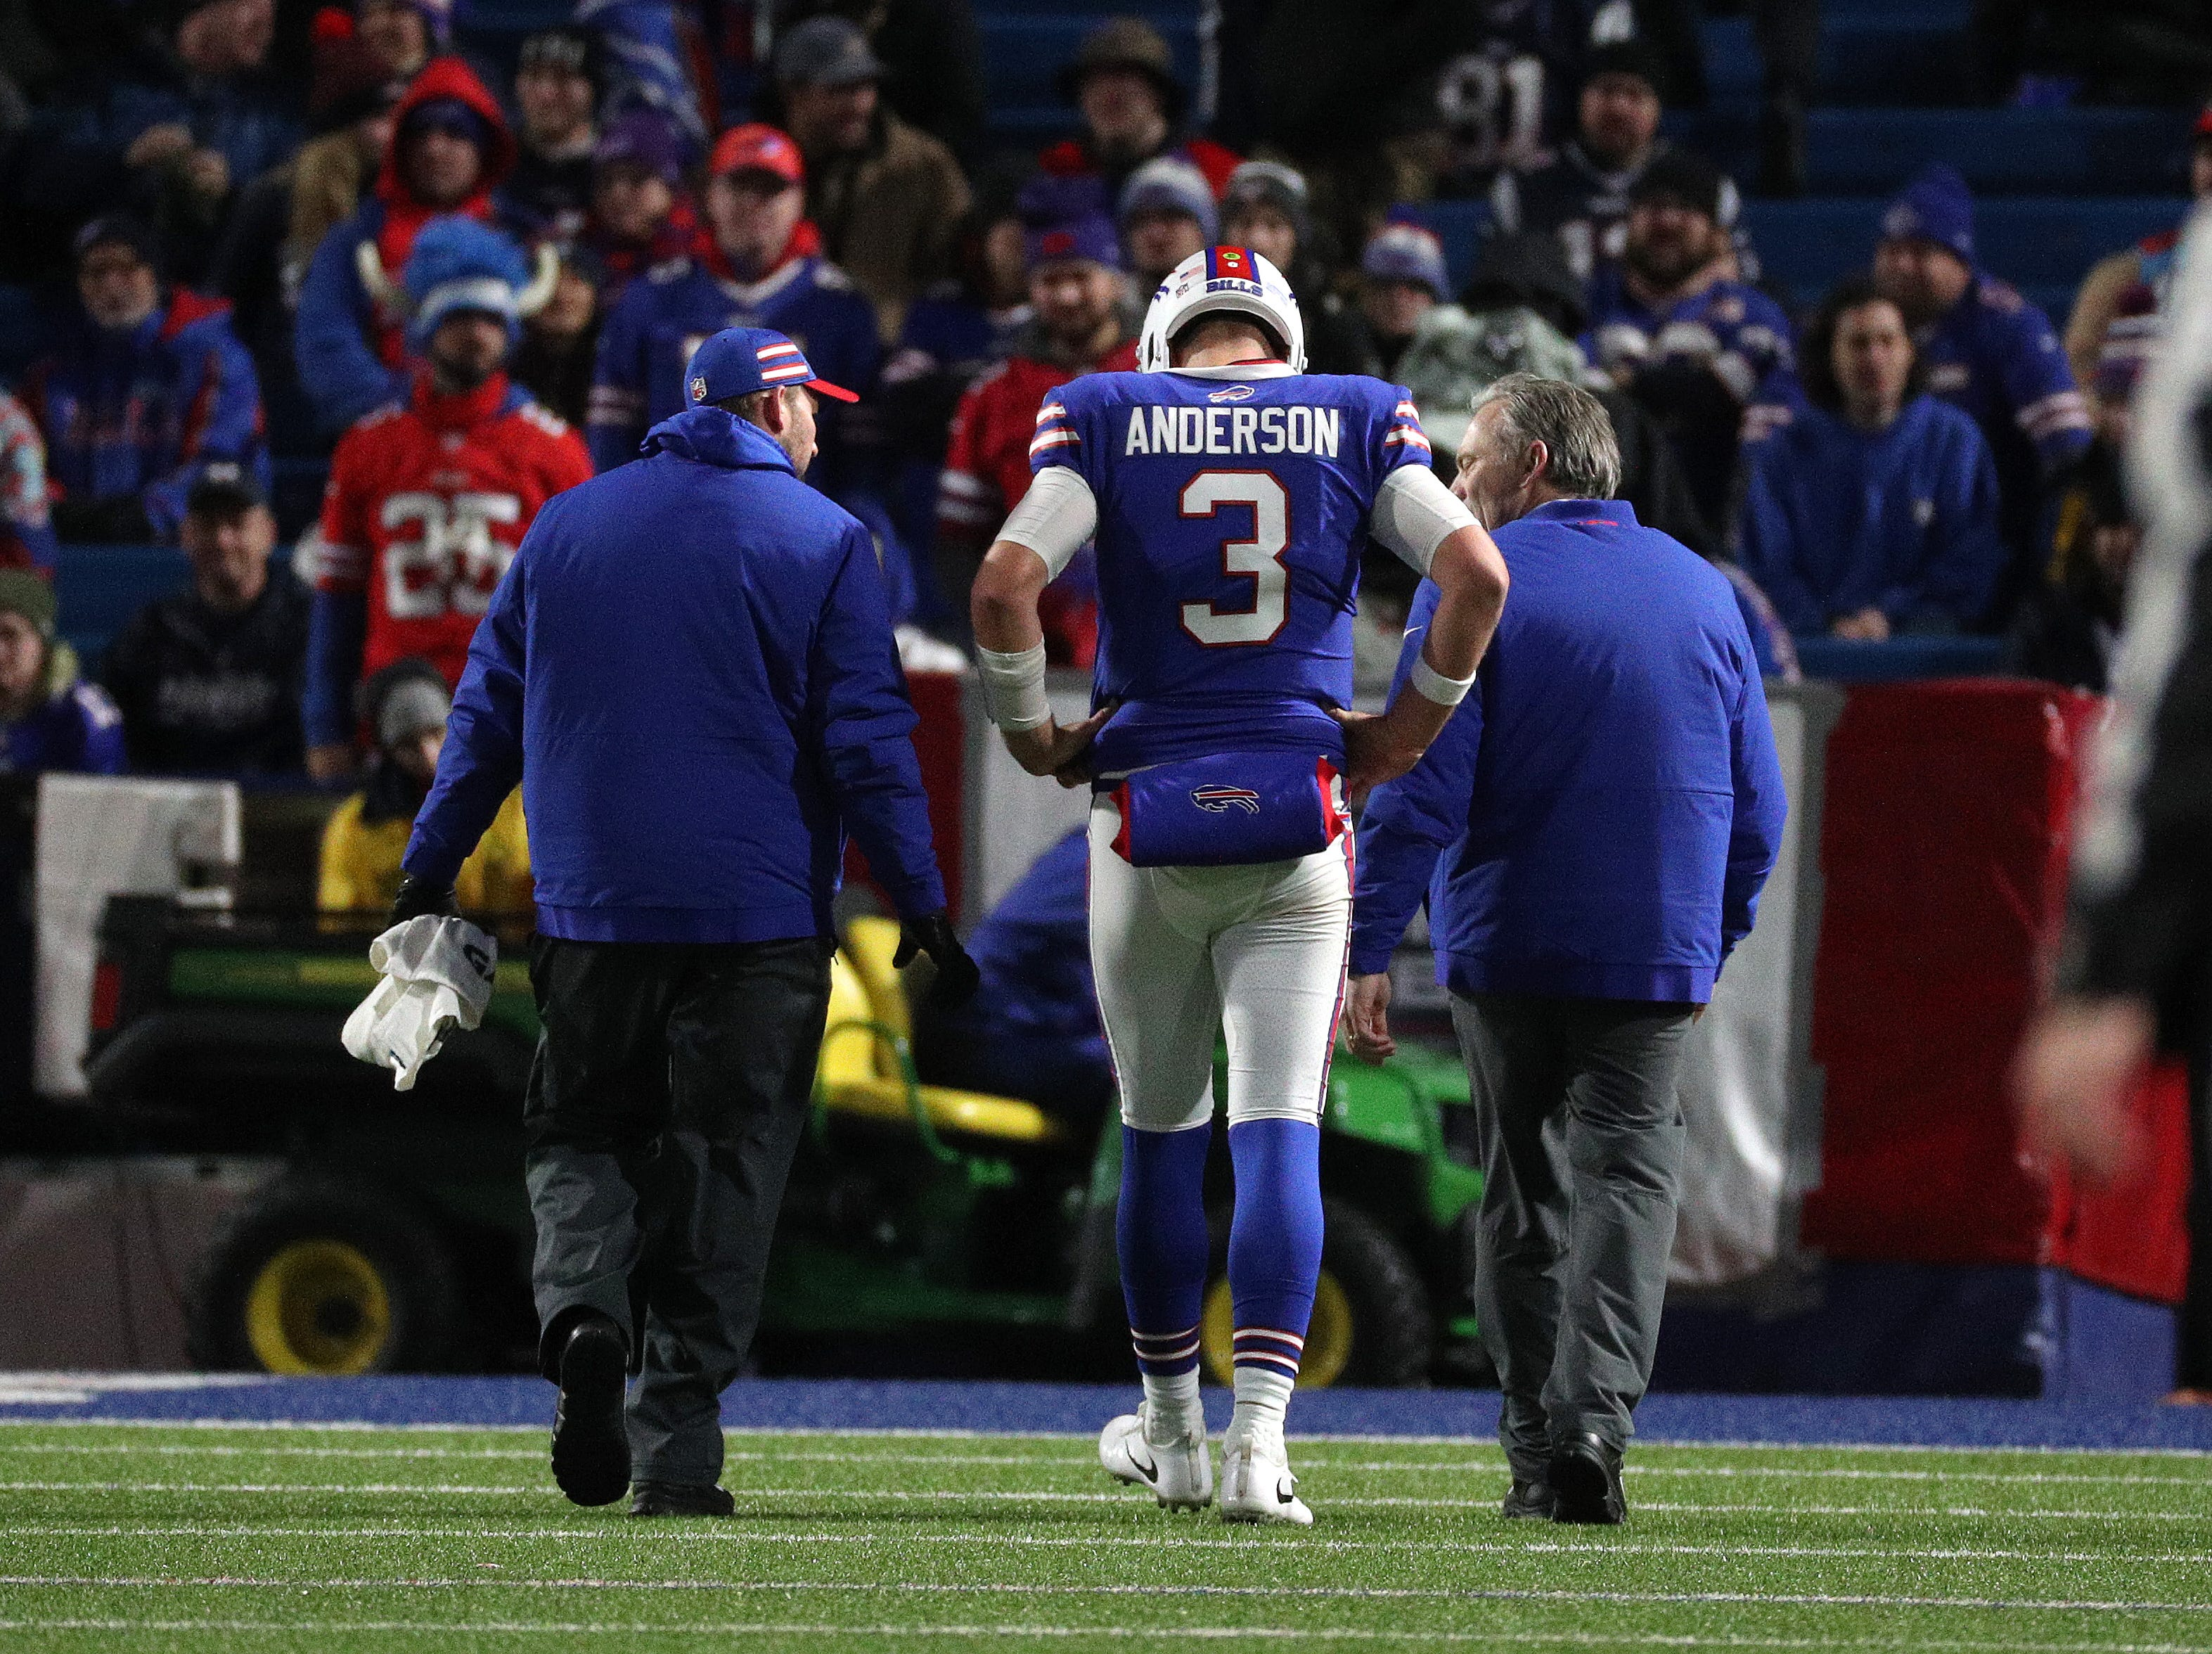 Bills quarterback Derek Anderson leaves the field after being sacked and injured.  The Patriots beat the Bills 25-6.